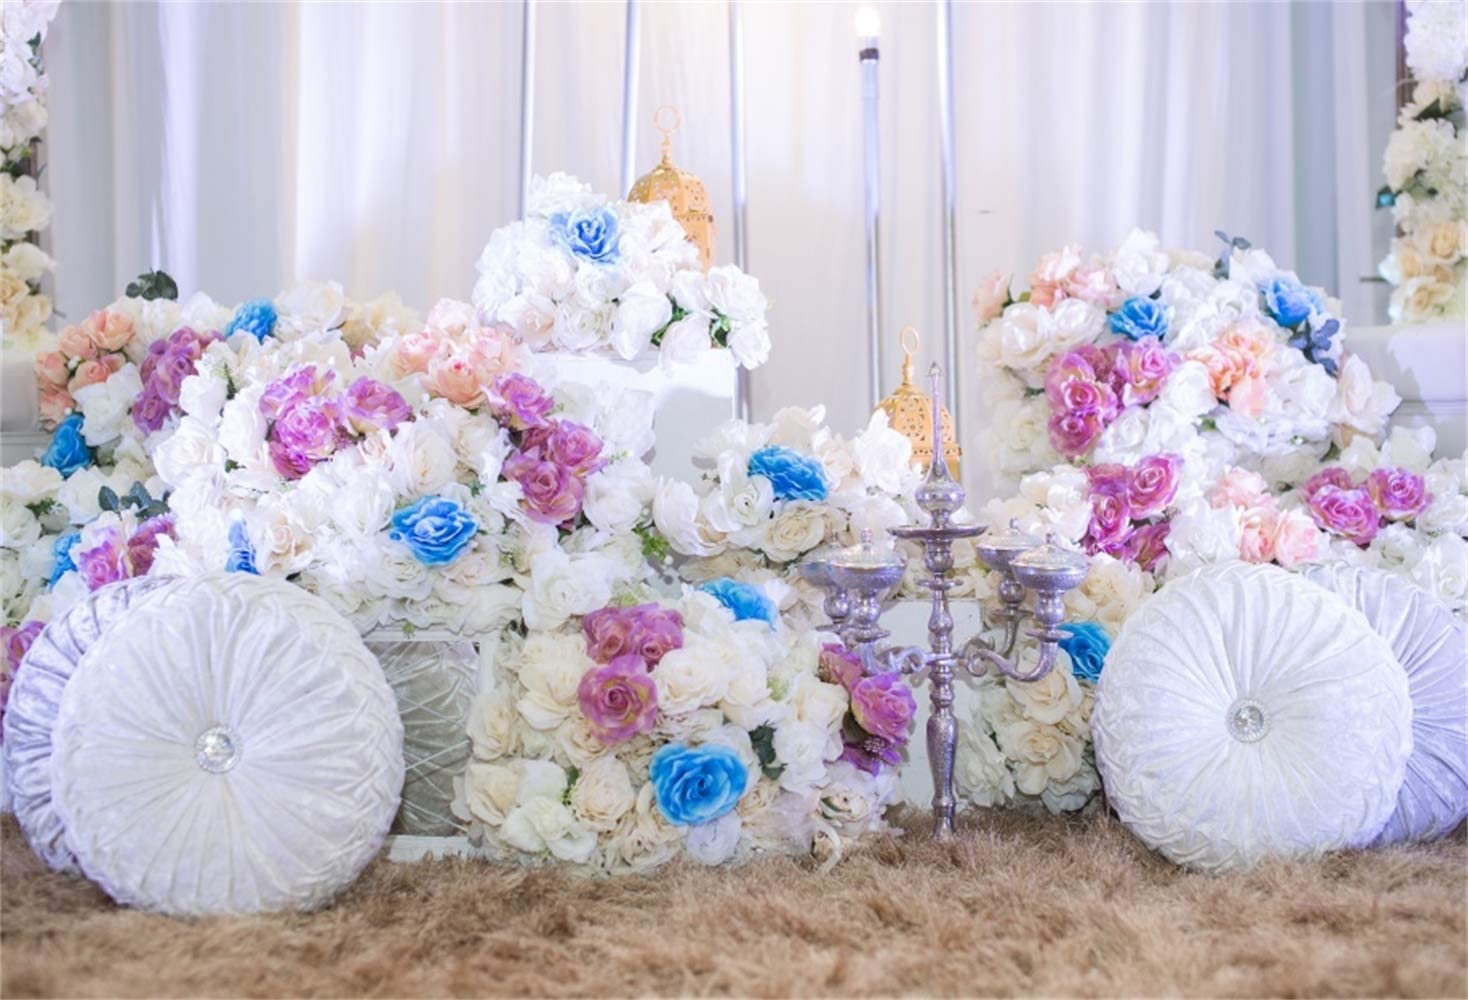 GoEoo Vinyl 8x6.5ft Romantic Valentines Day Photography Background Beautiful Flower Sports Car White Cushion Wheels Hay Ground Backdrops Wedding Ceremony Decoration Lovers Couple Photo Shooting